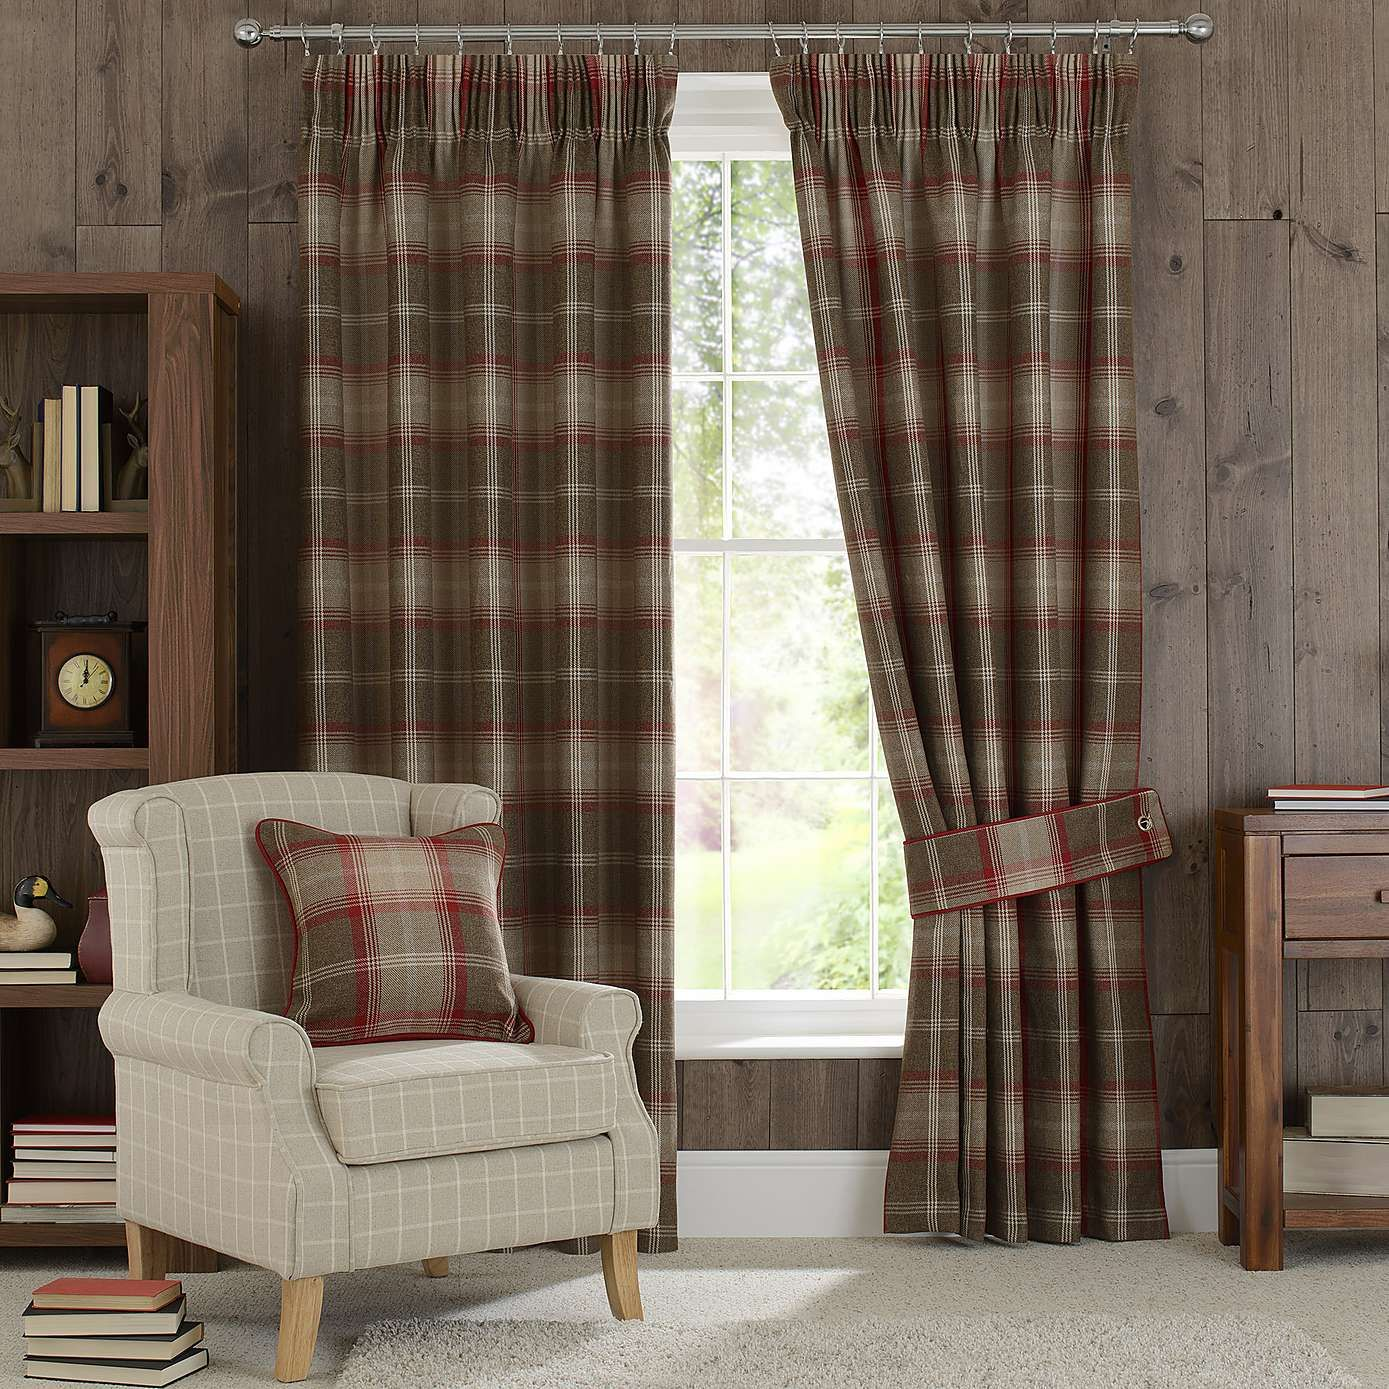 Highland Check Red Pencil Pleat Lined Curtains - Dunelm